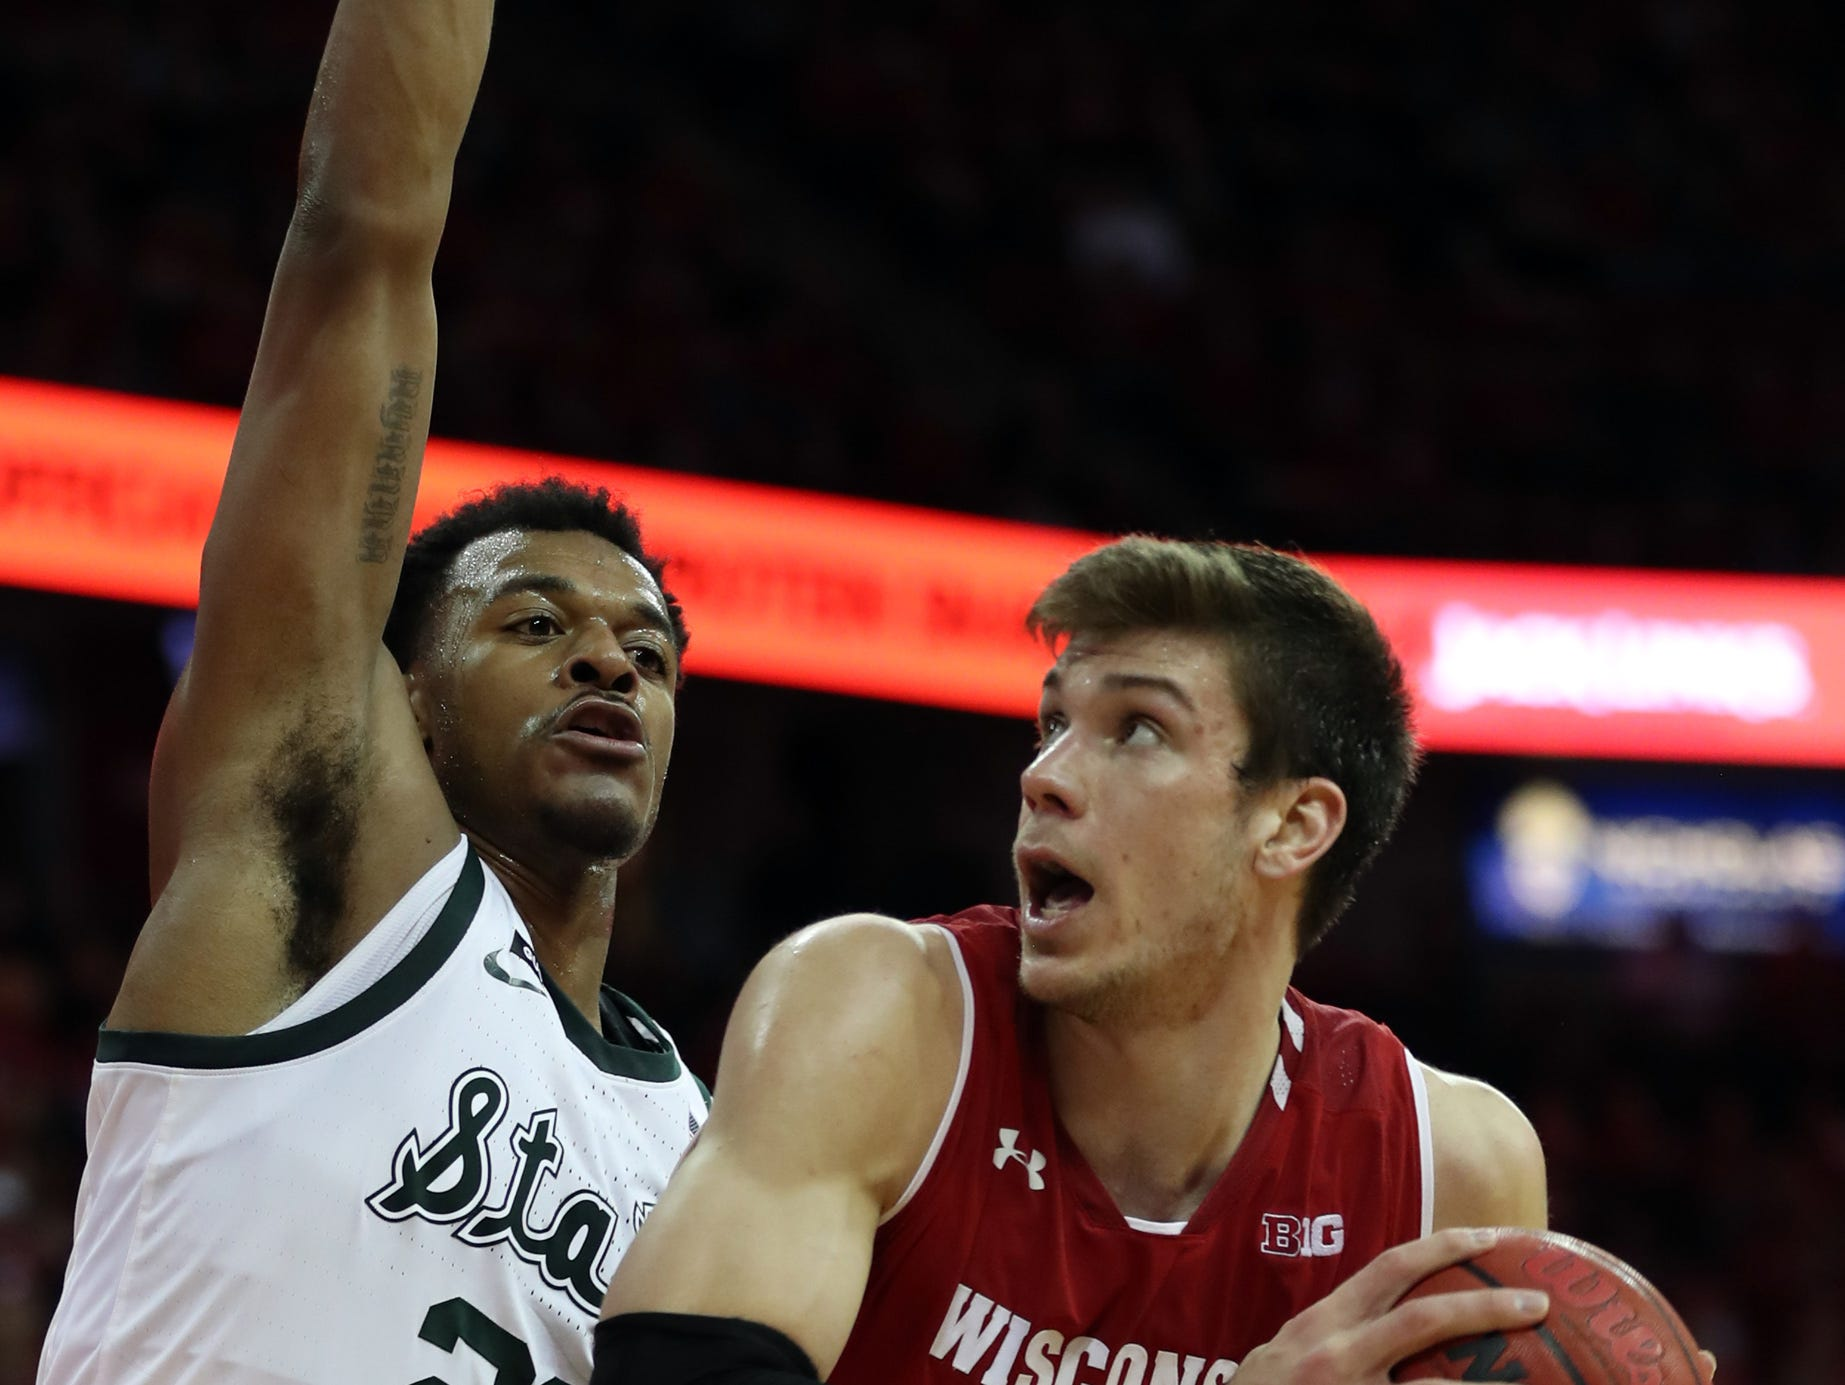 Wisconsin Badgers forward Ethan Happ (22) works the ball as Michigan State Spartans forward Xavier Tillman ((left) defends during the second half at the Kohl Center.